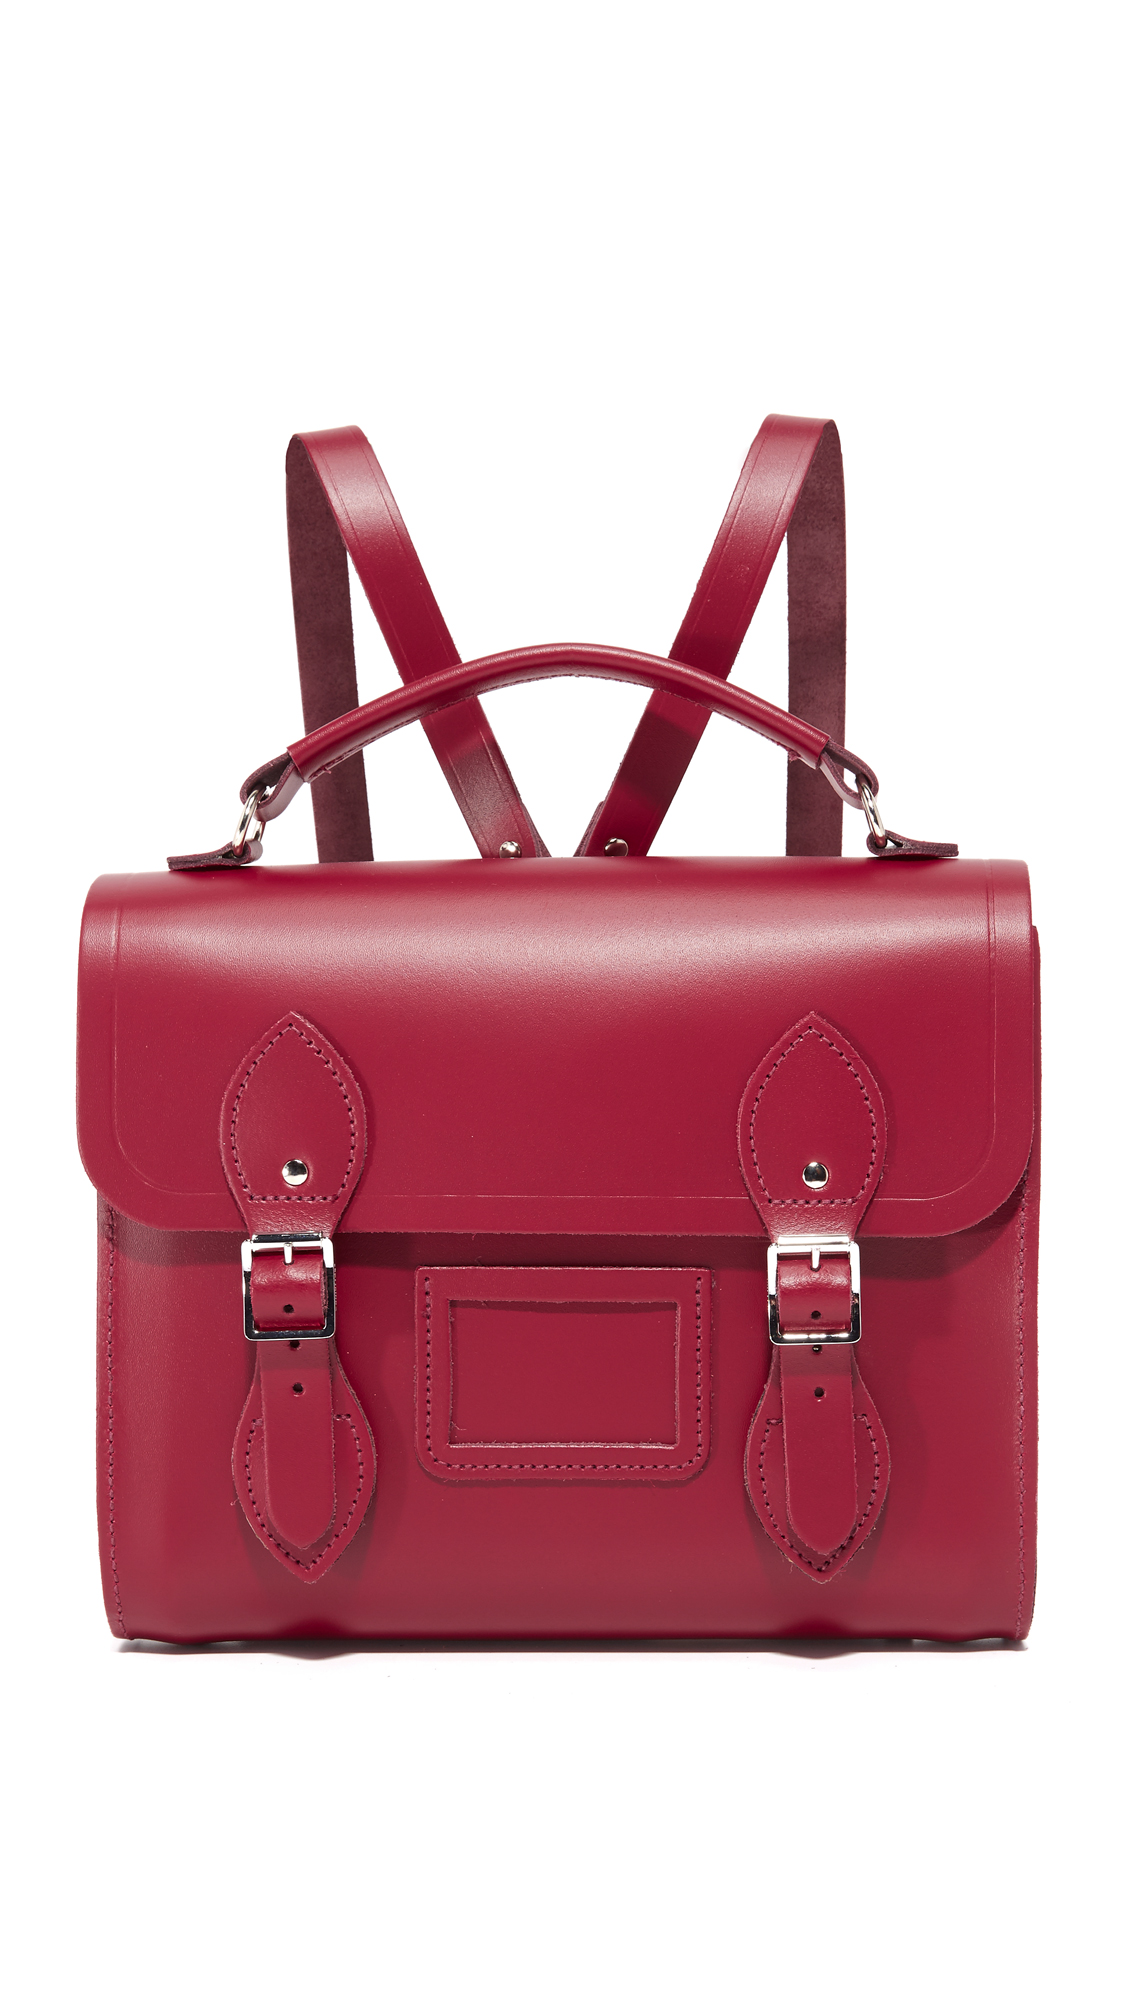 A petite Cambridge Satchel backpack in smooth leather. Magnetic tabs with decorative buckles fasten the top flap. Unlined interior. Top handle and adjustable shoulder straps. Dust bag included. Leather: Cowhide. Weight: 24oz / 0.68kg. Made in United